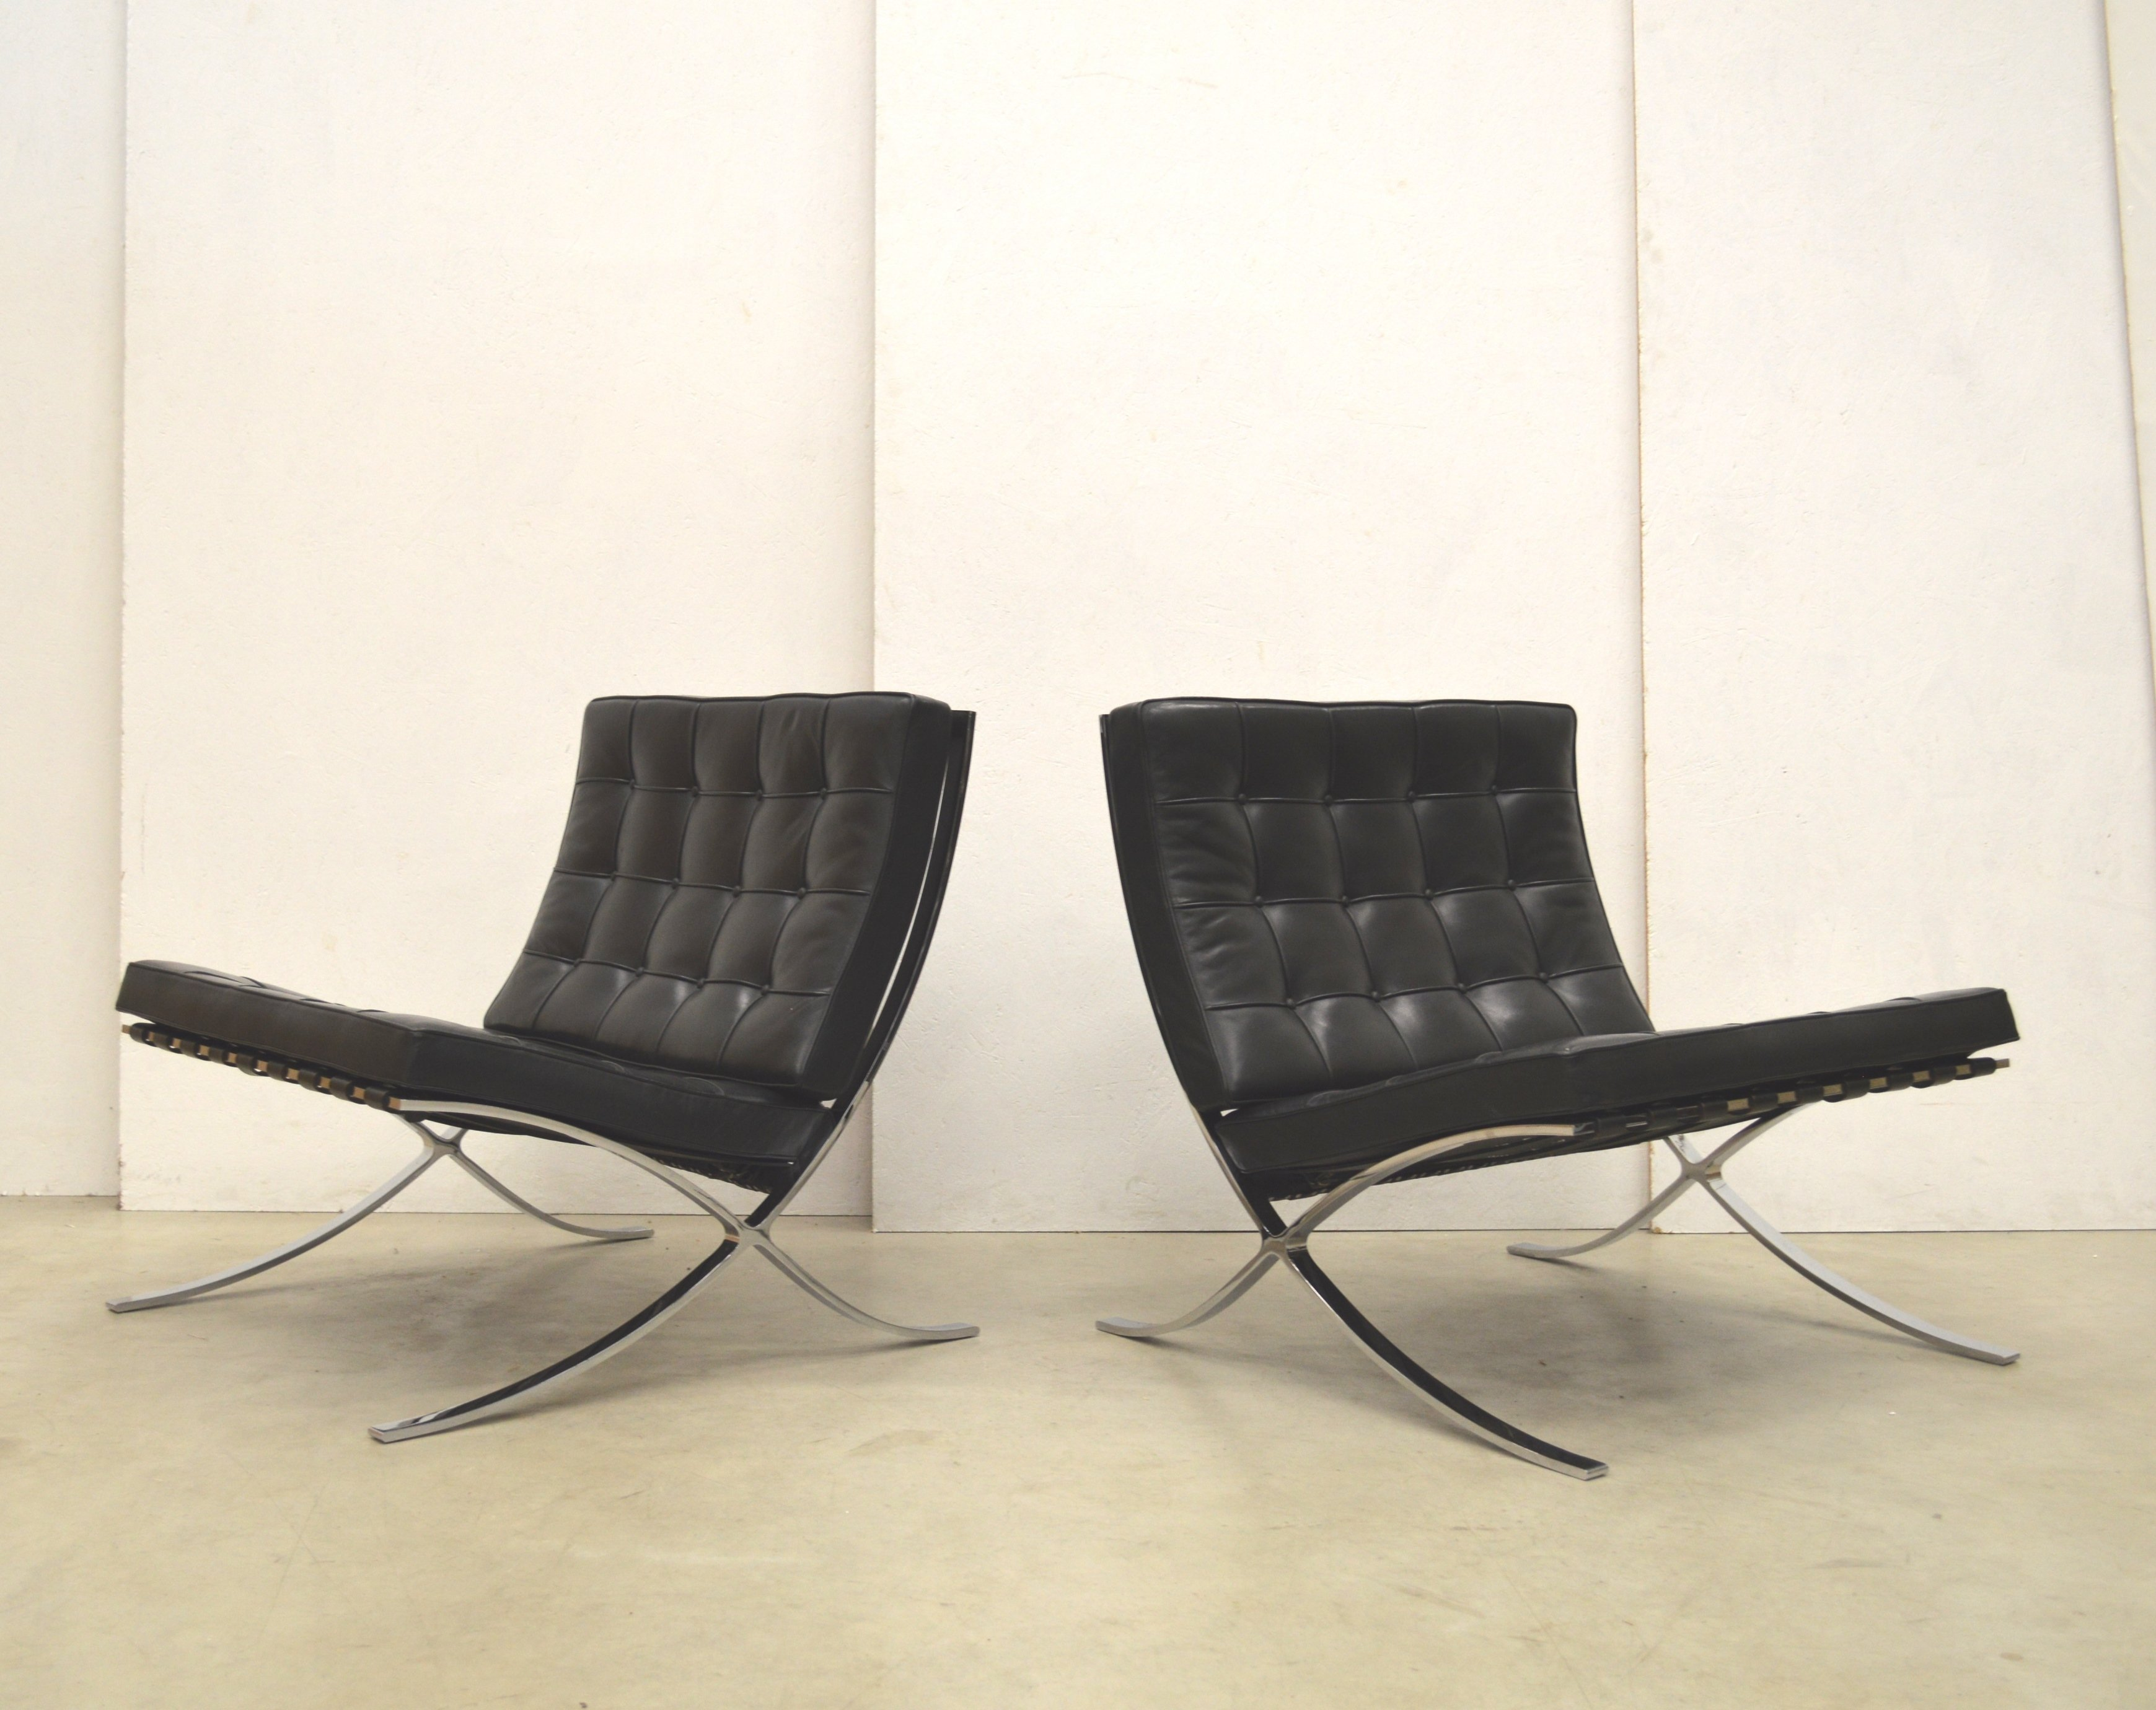 Pair Of Barcelona Lounge Chairs By Ludwig Mies Van Der Rohe For Knoll  International, 1980s